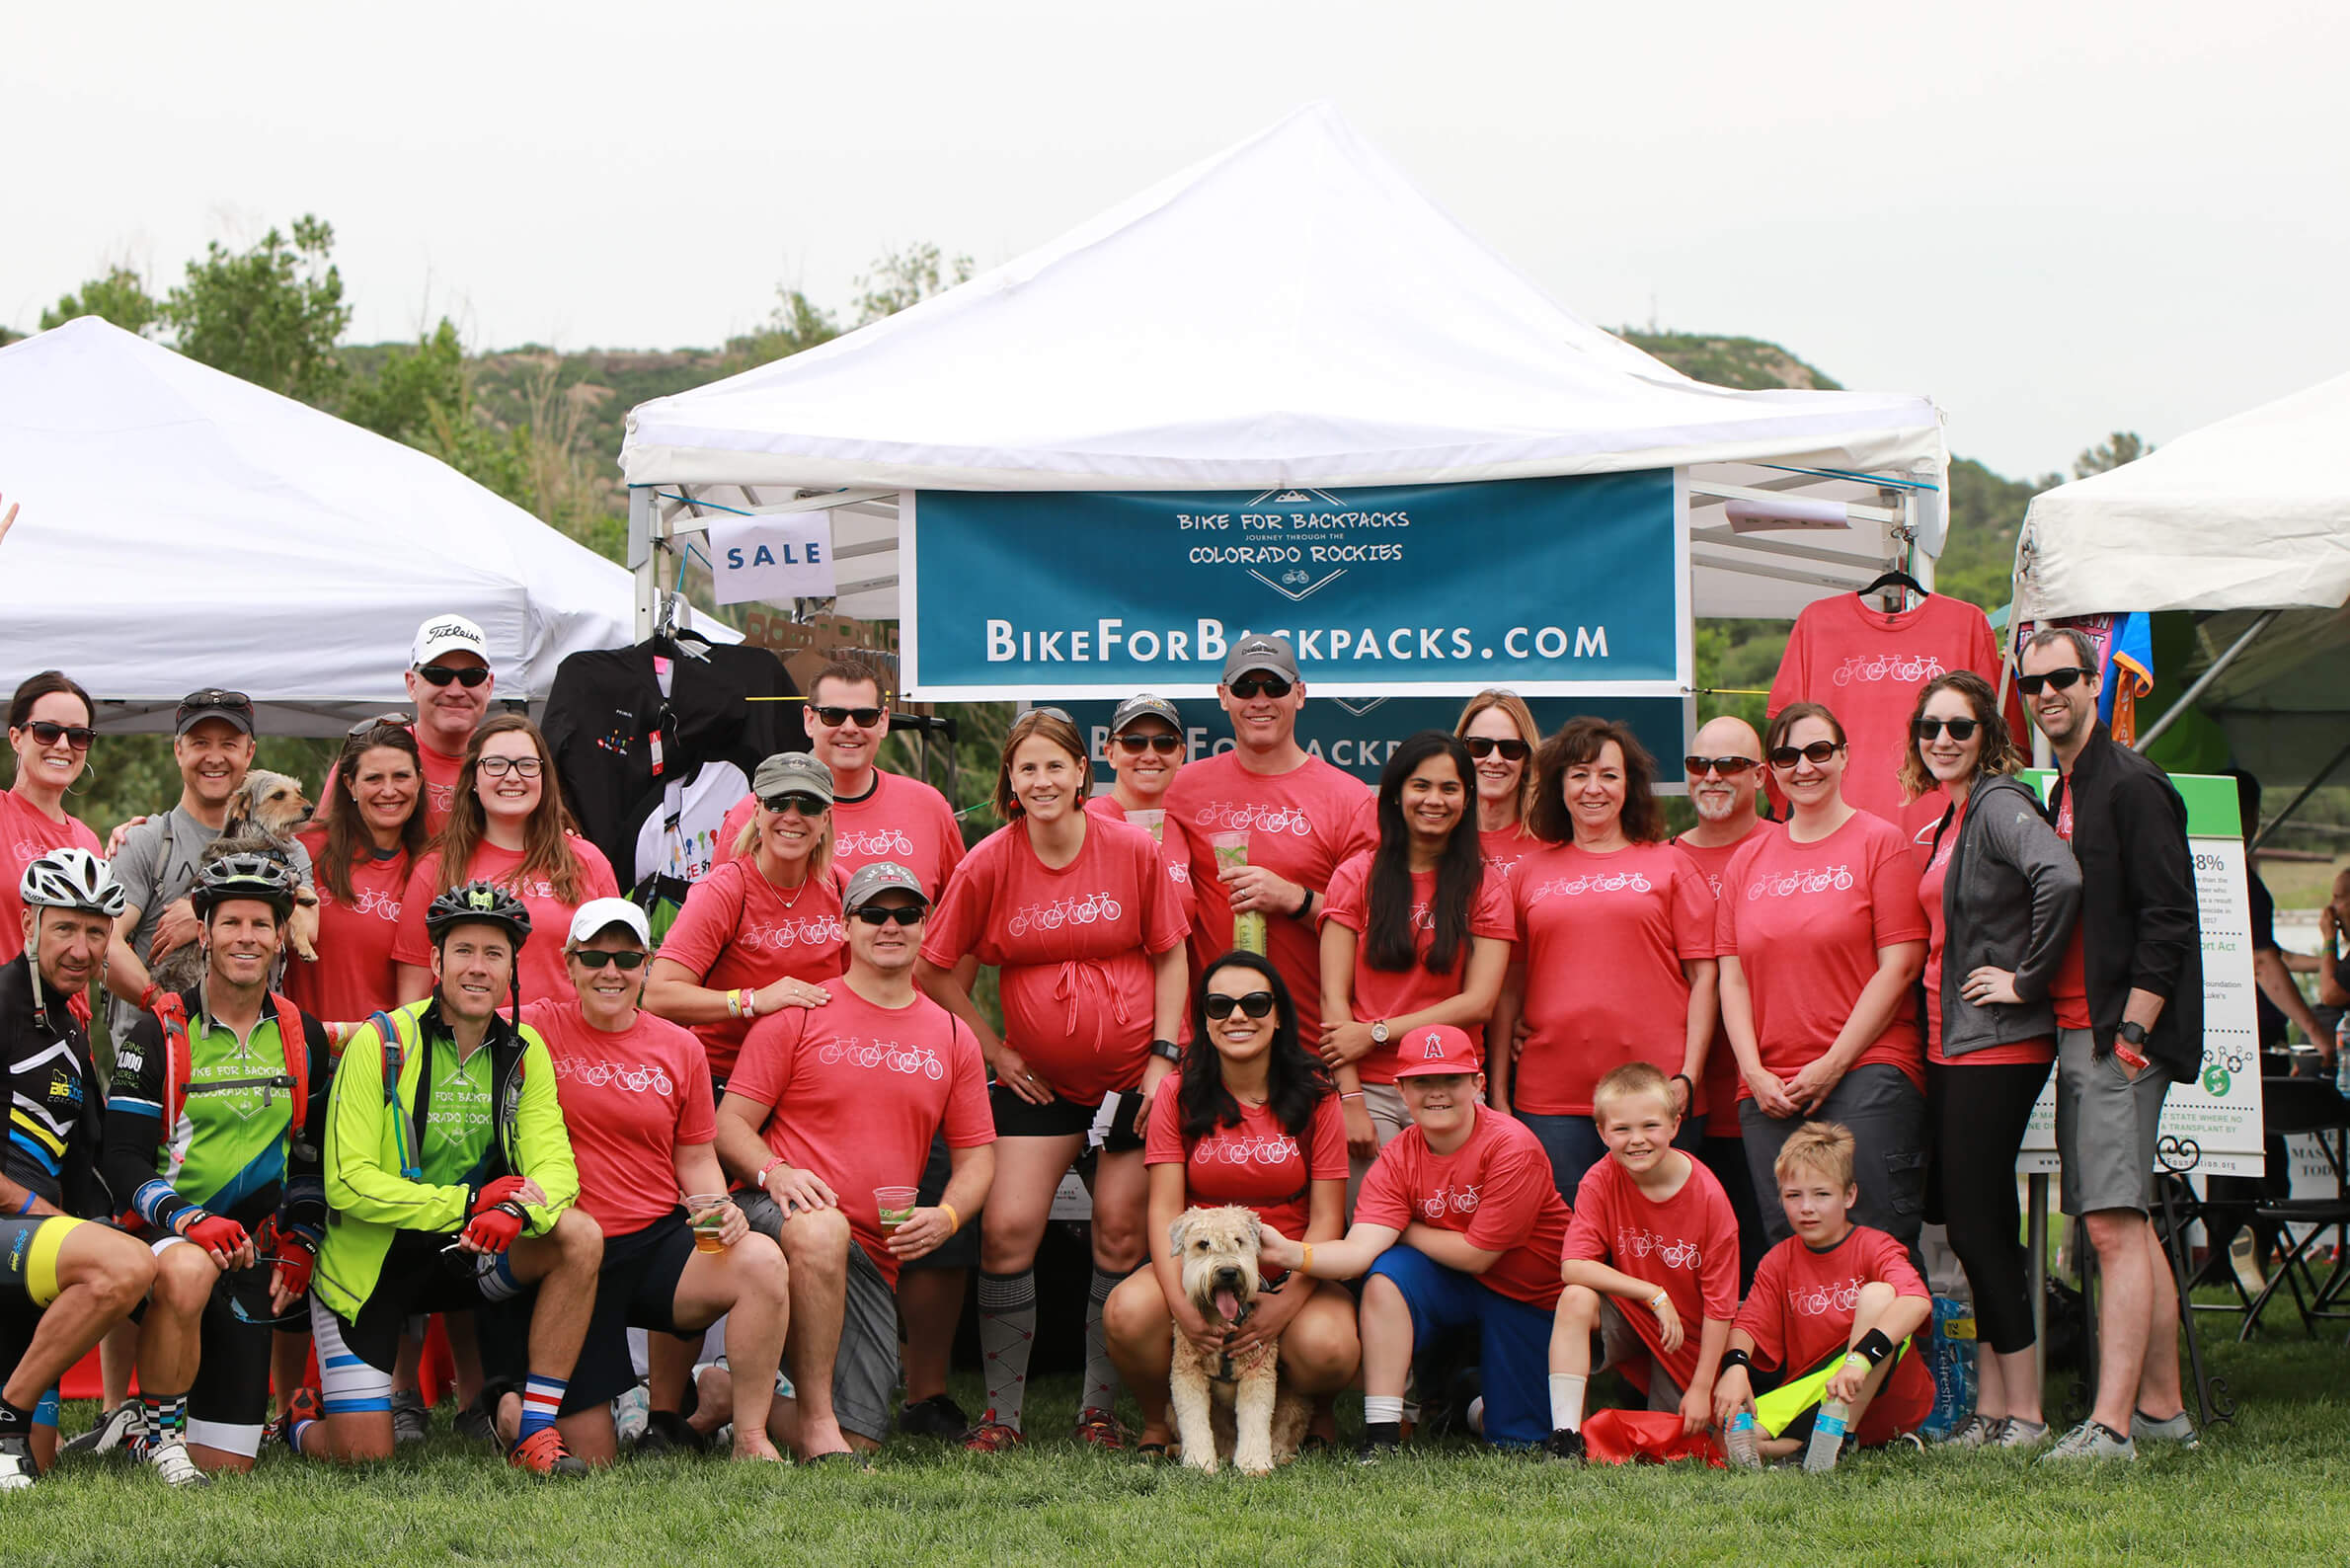 Our team at The CE Shop Foundation will be riding and volunteering at the 2019 Elephant Rock on June 2nd to eliminate childhood hunger.